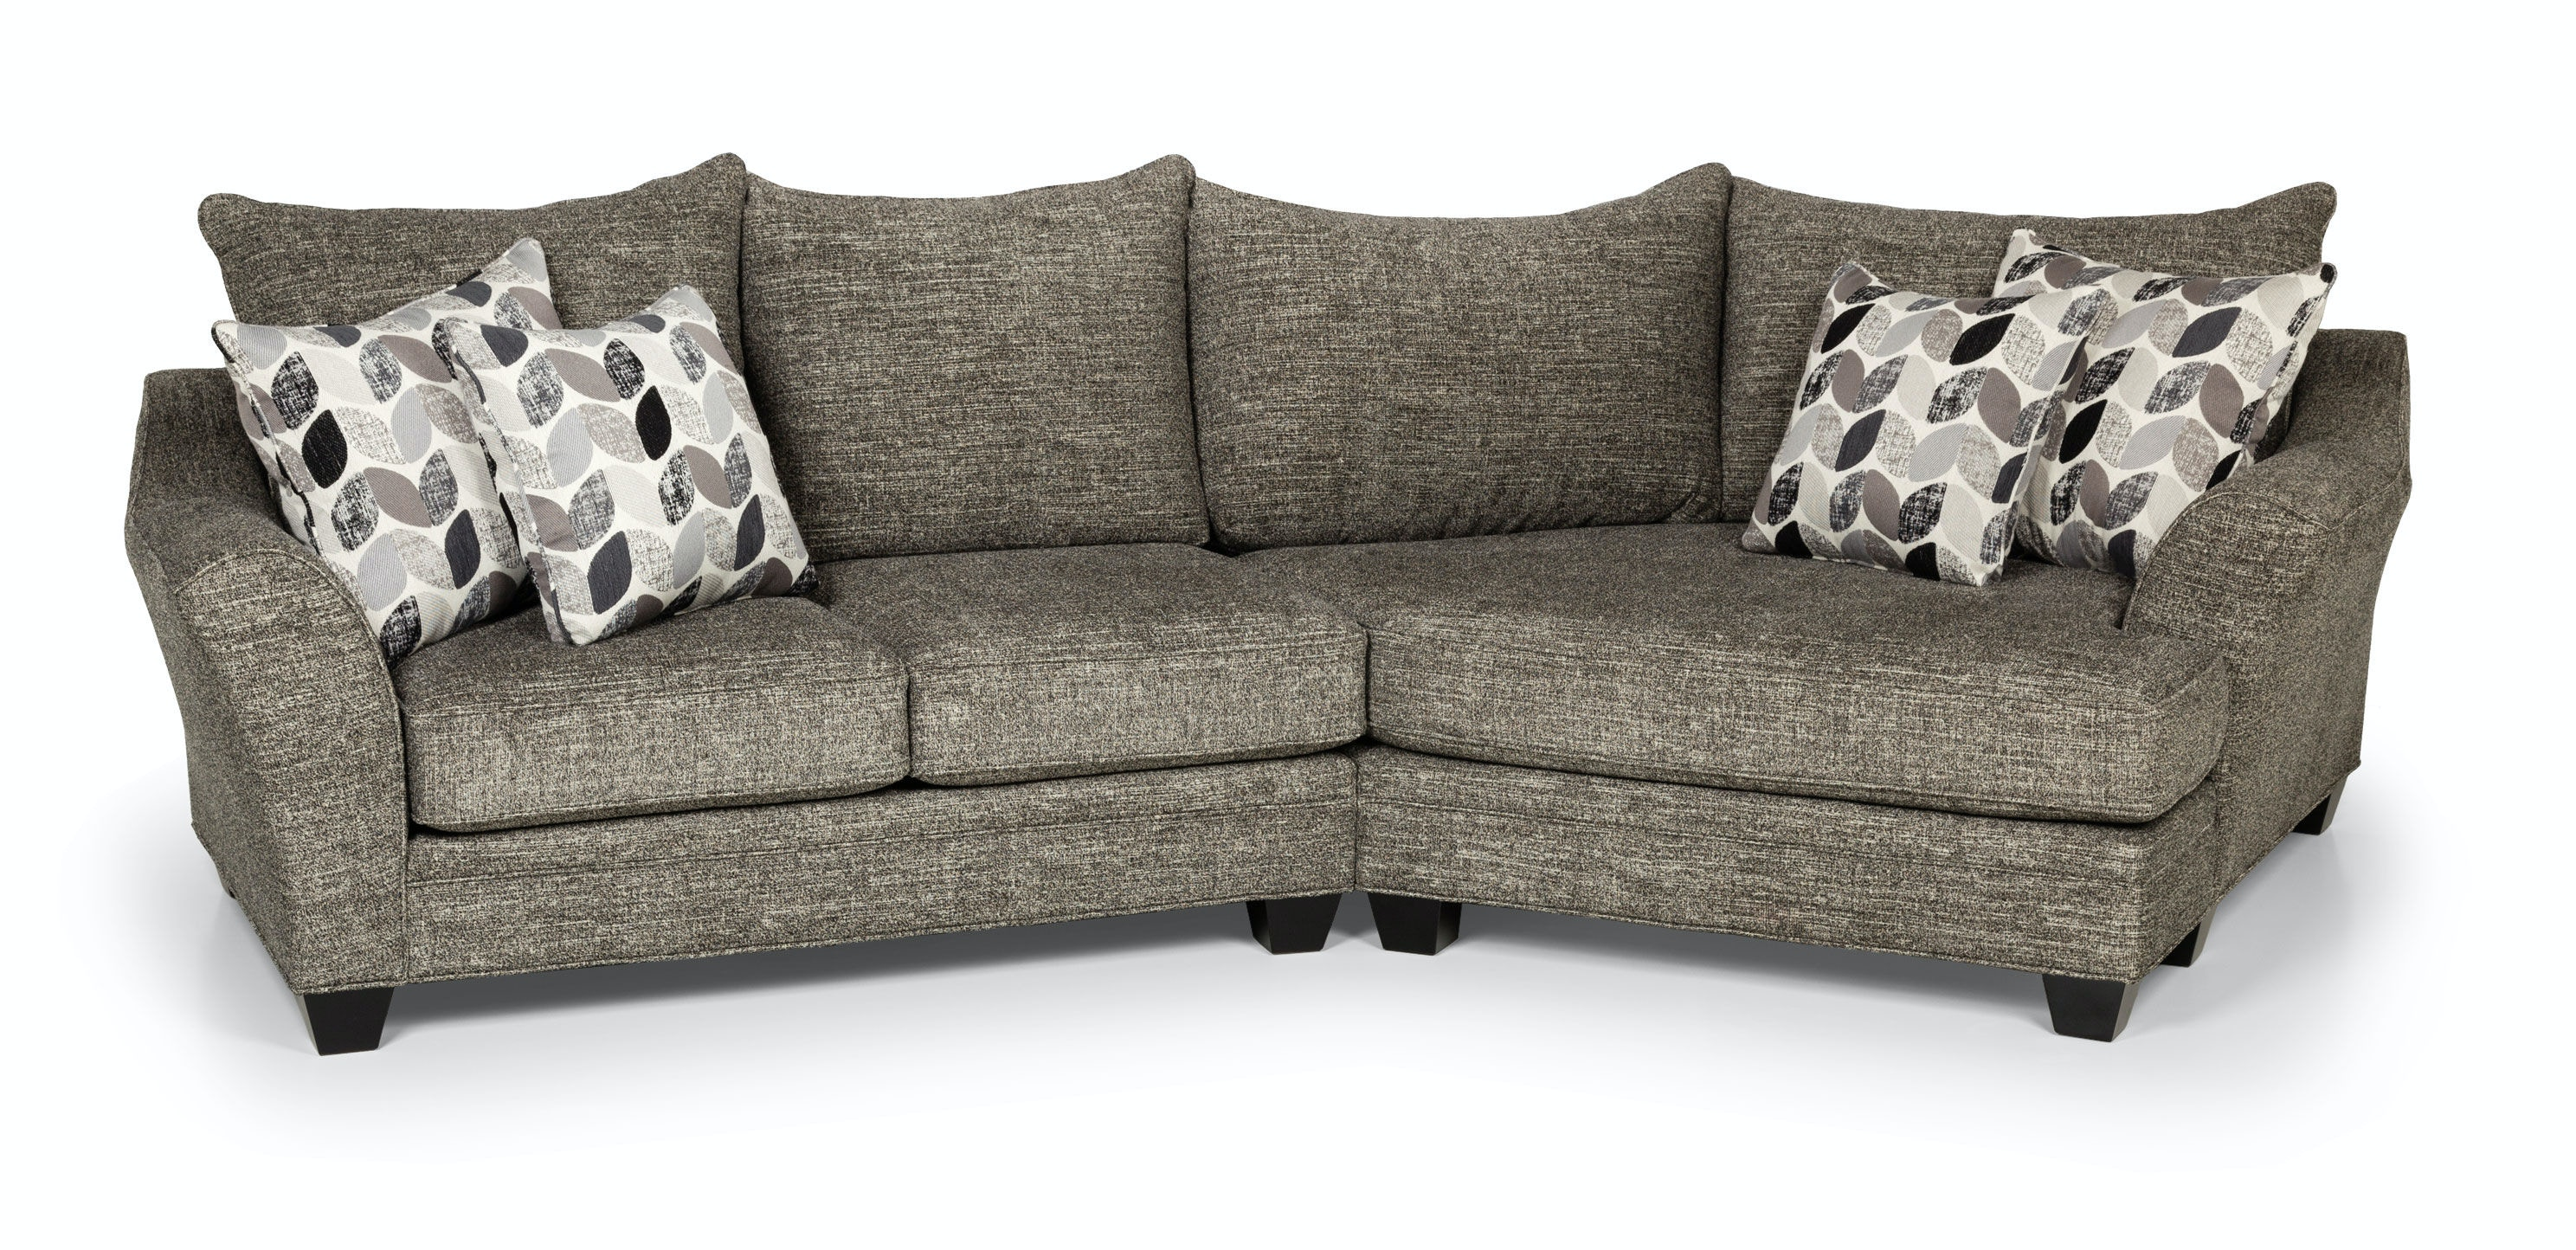 Stanton Furniture 372 Sectional